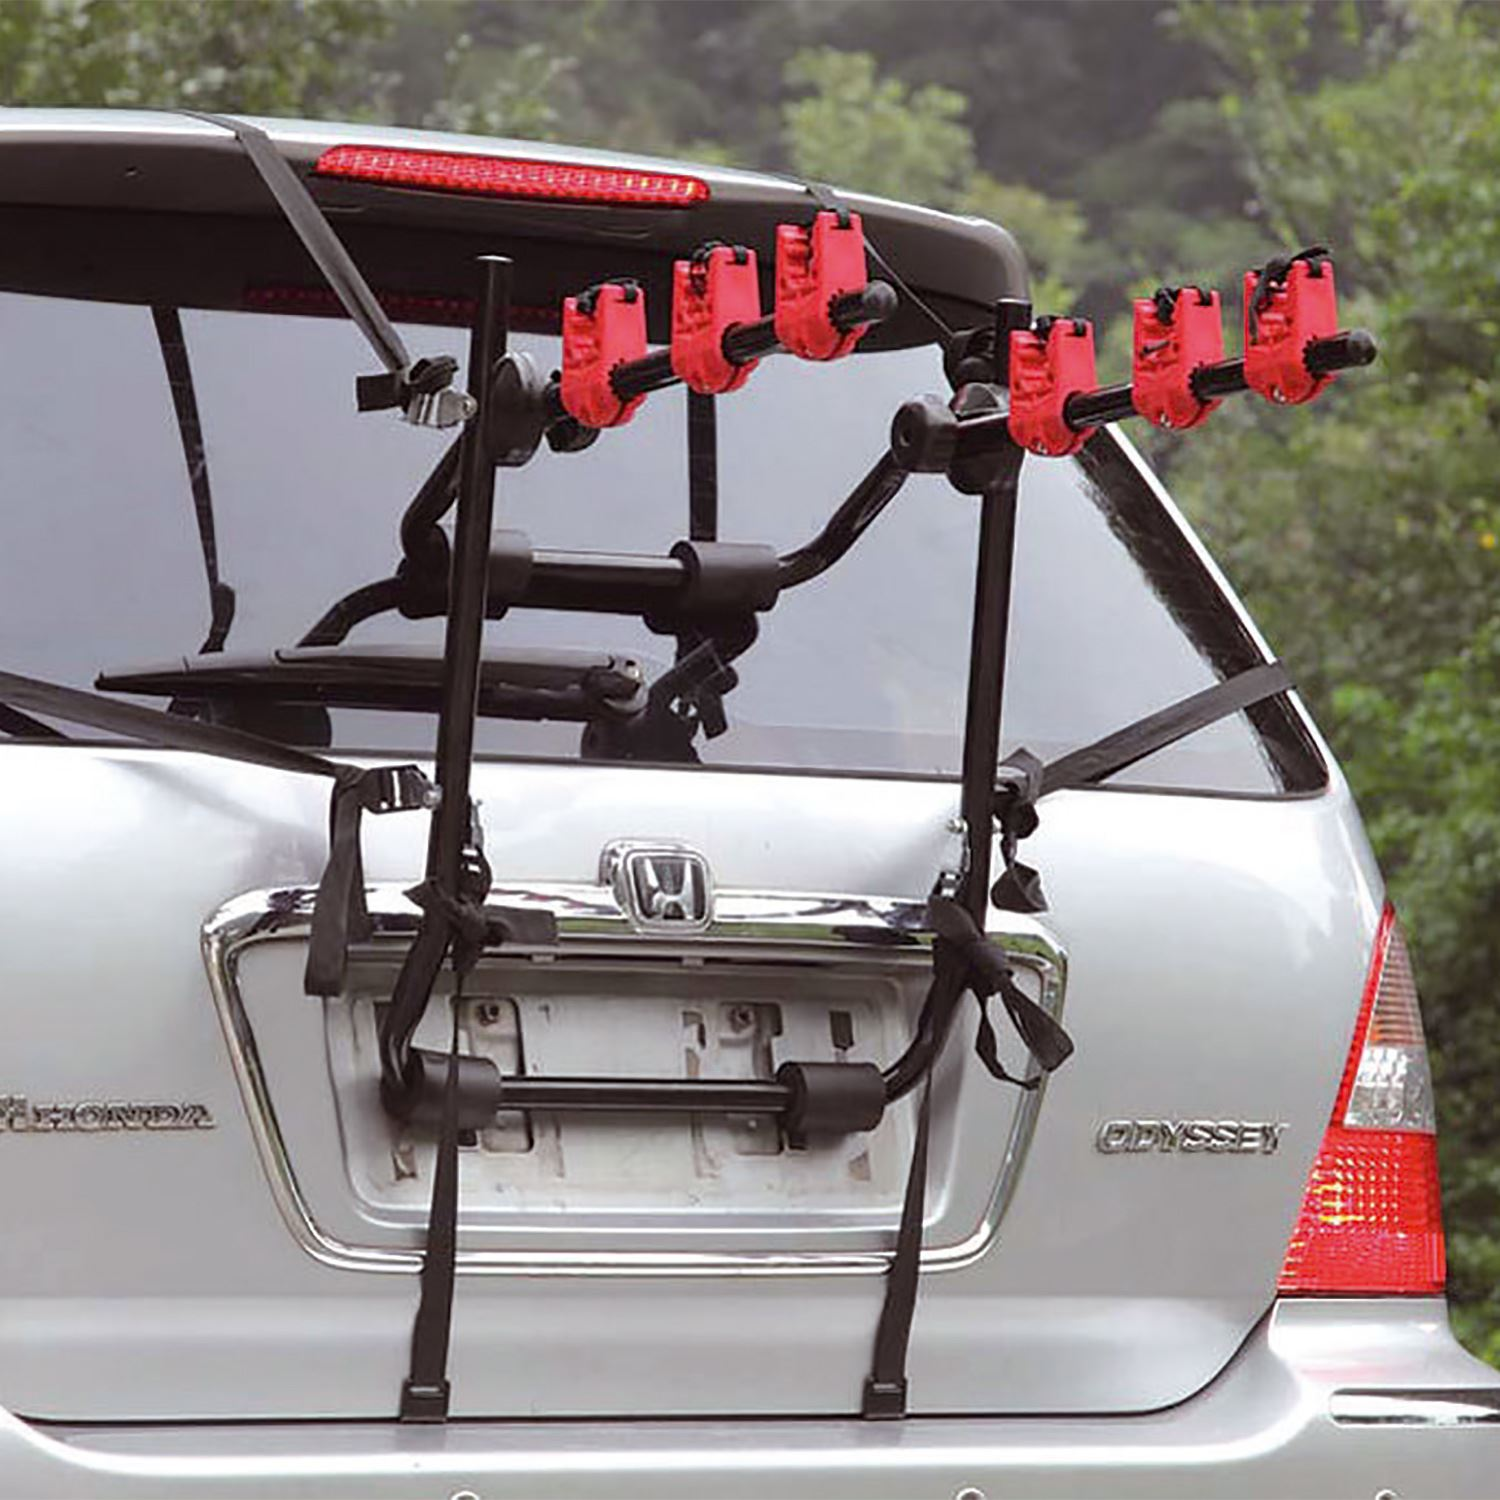 3 Bicycle Bike Car Cycle Carrier Rack Hatchback Rear Mount ...